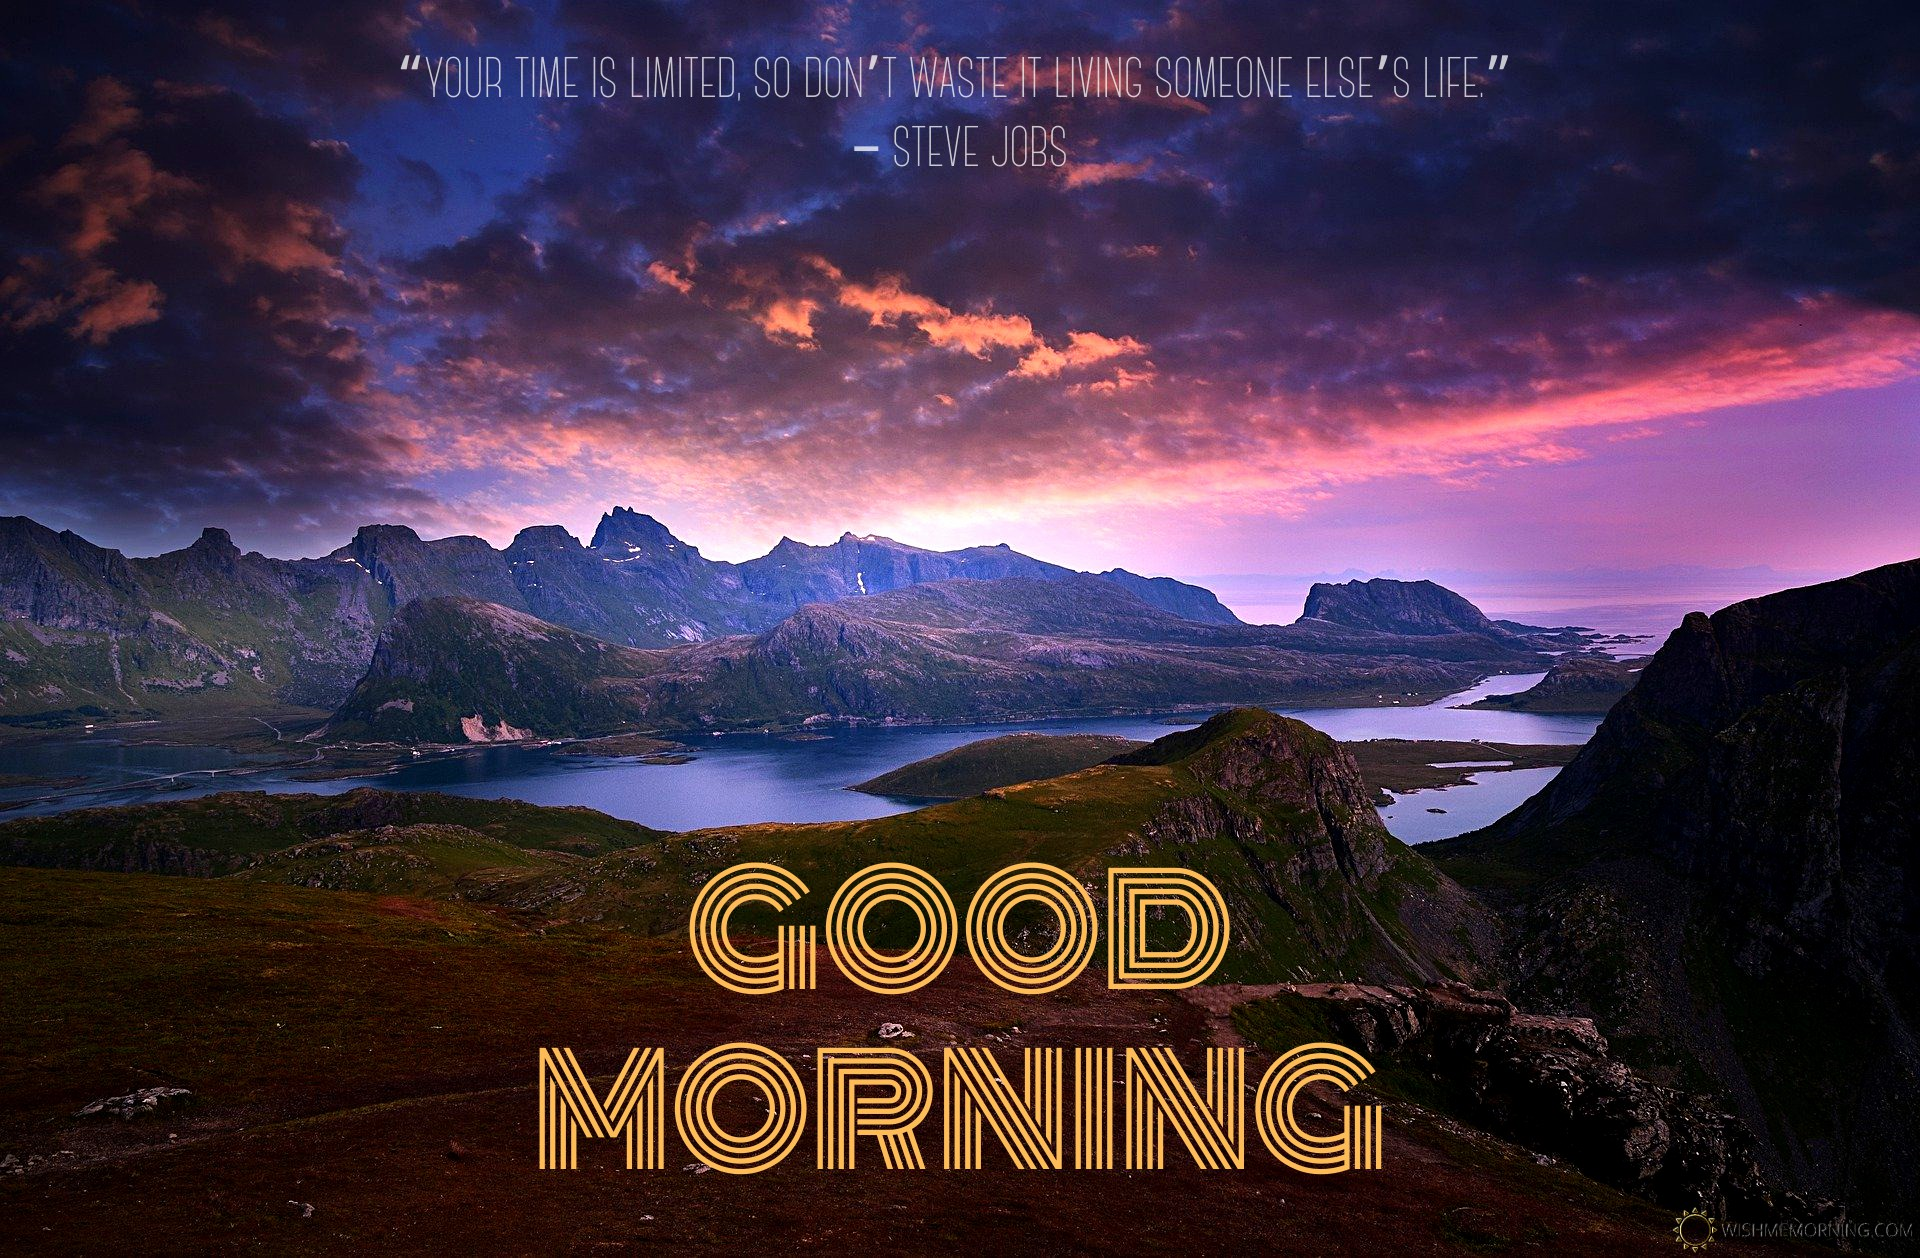 Red Clouds Over Mountain Morning Wish Image